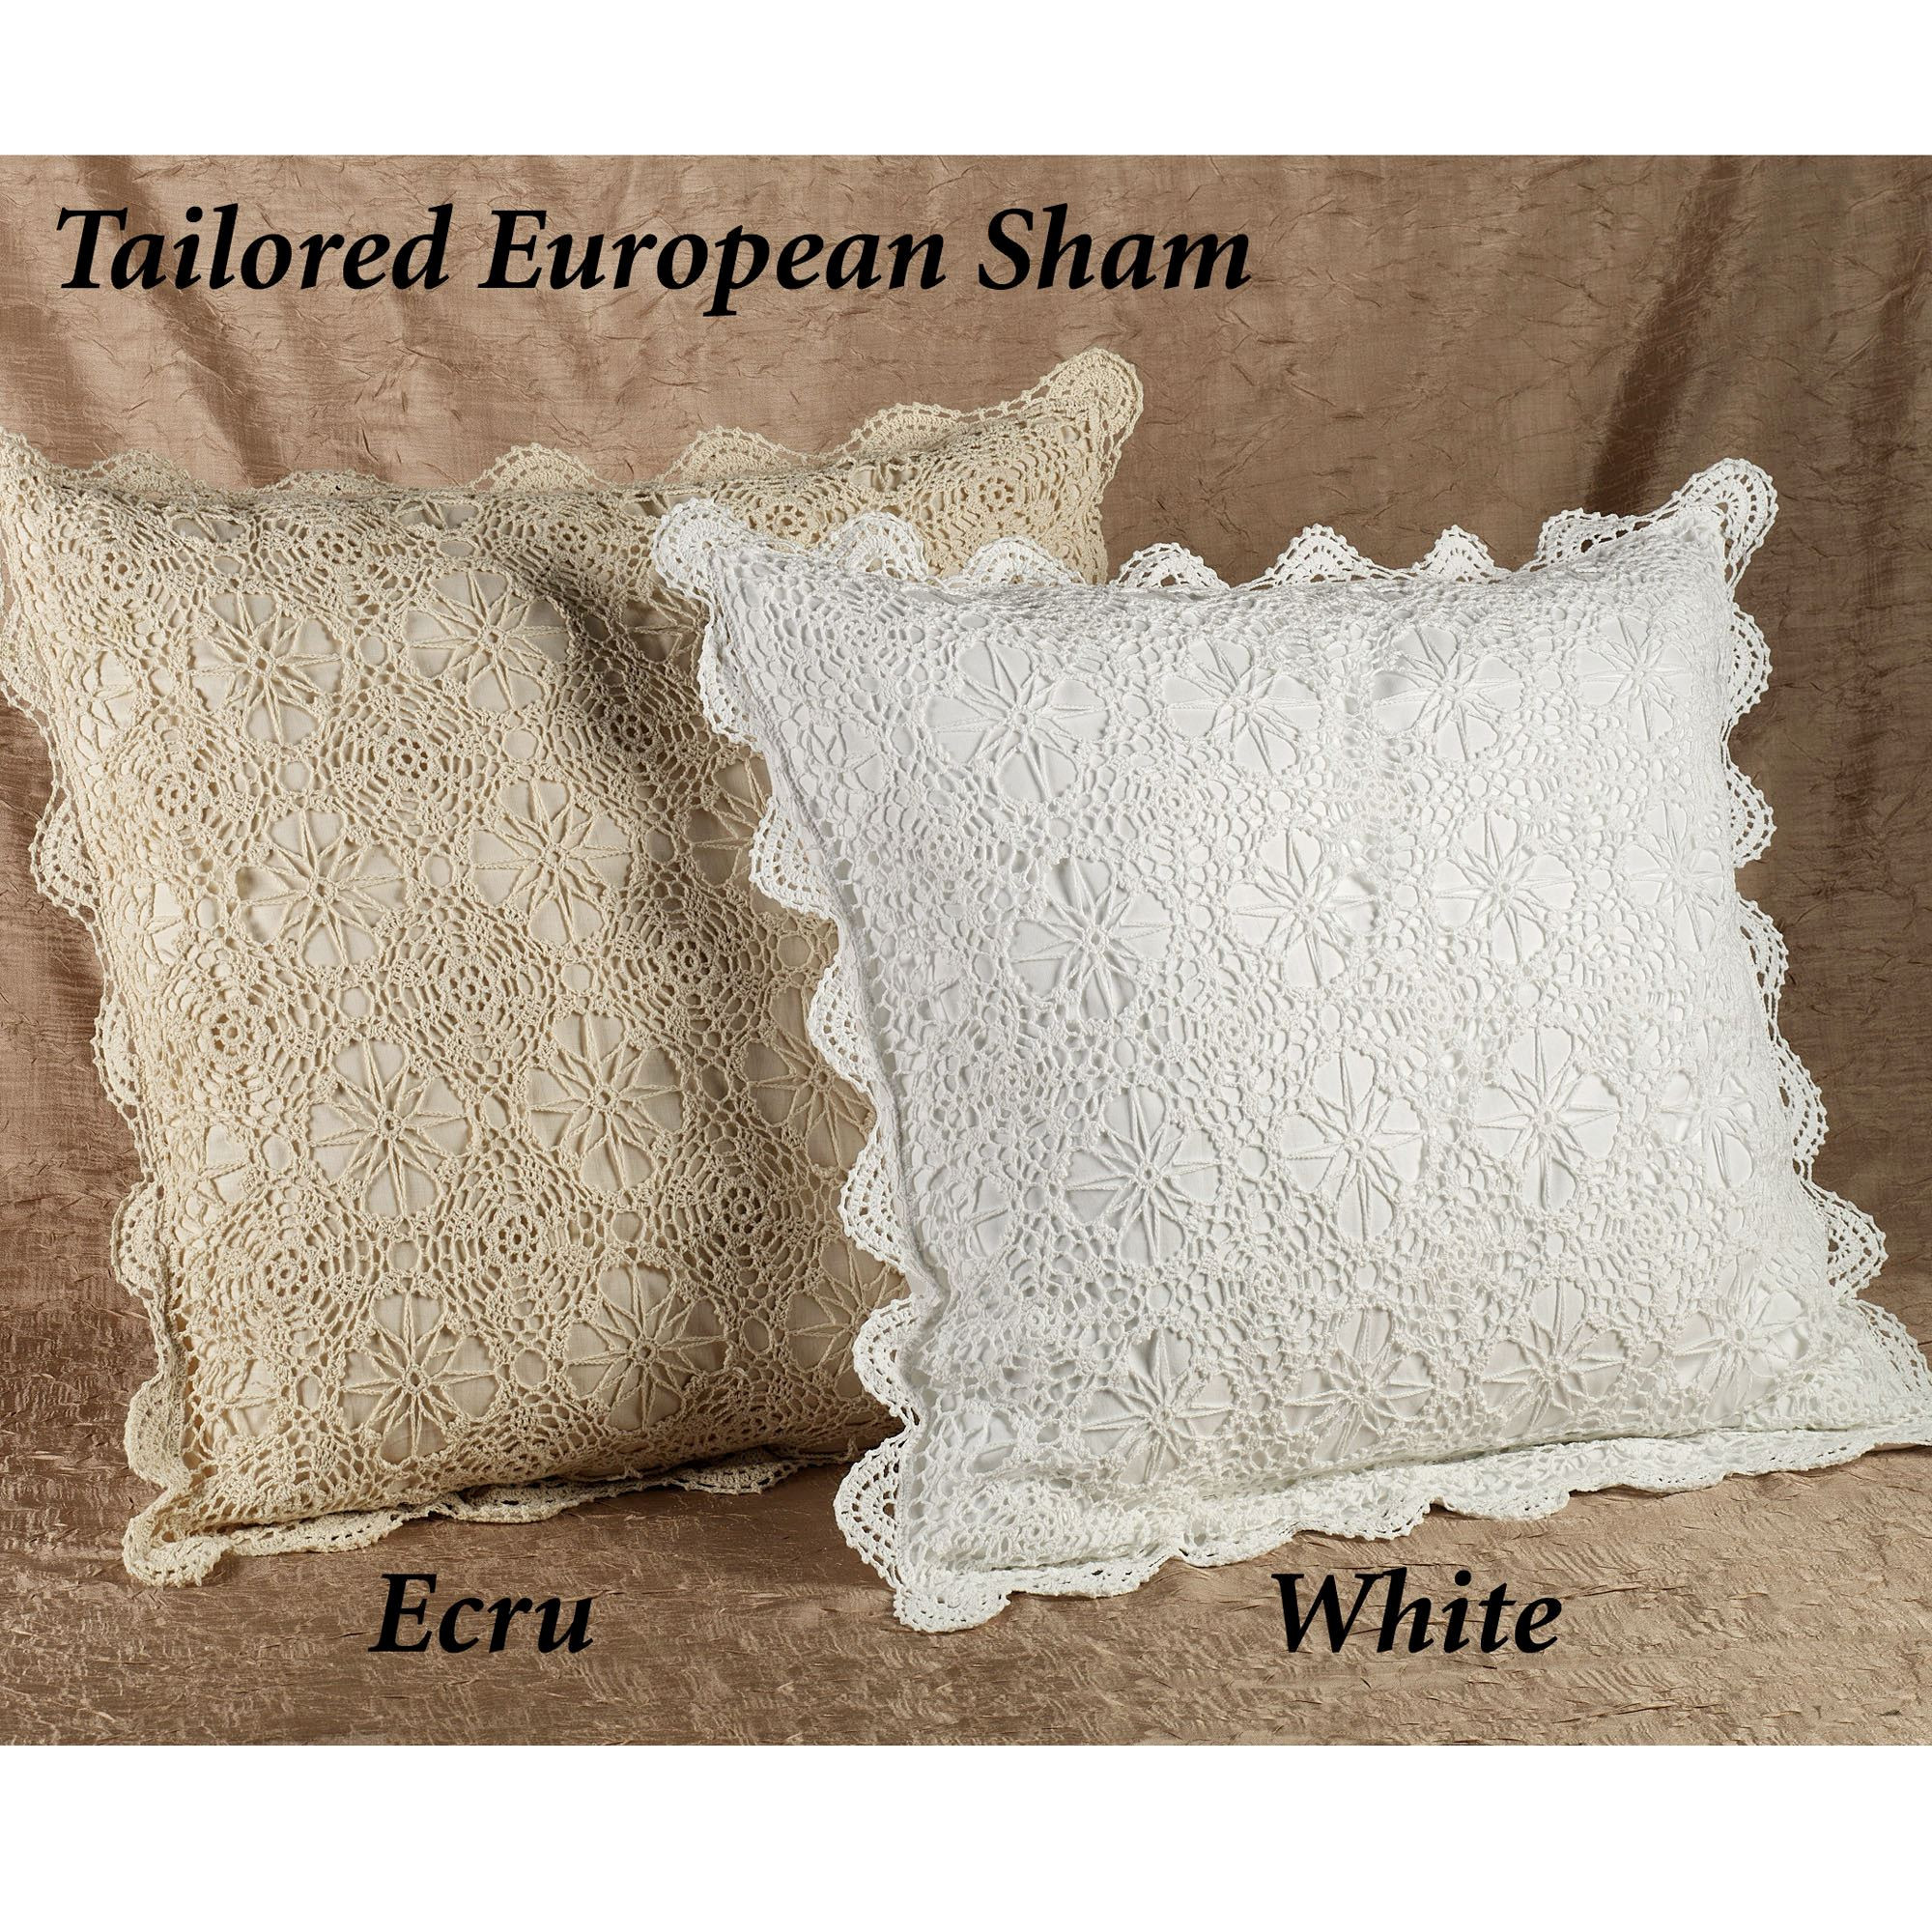 Awesome Crochet Bedskirts and Shams Crochet Pillow Shams Of Marvelous 40 Photos Crochet Pillow Shams